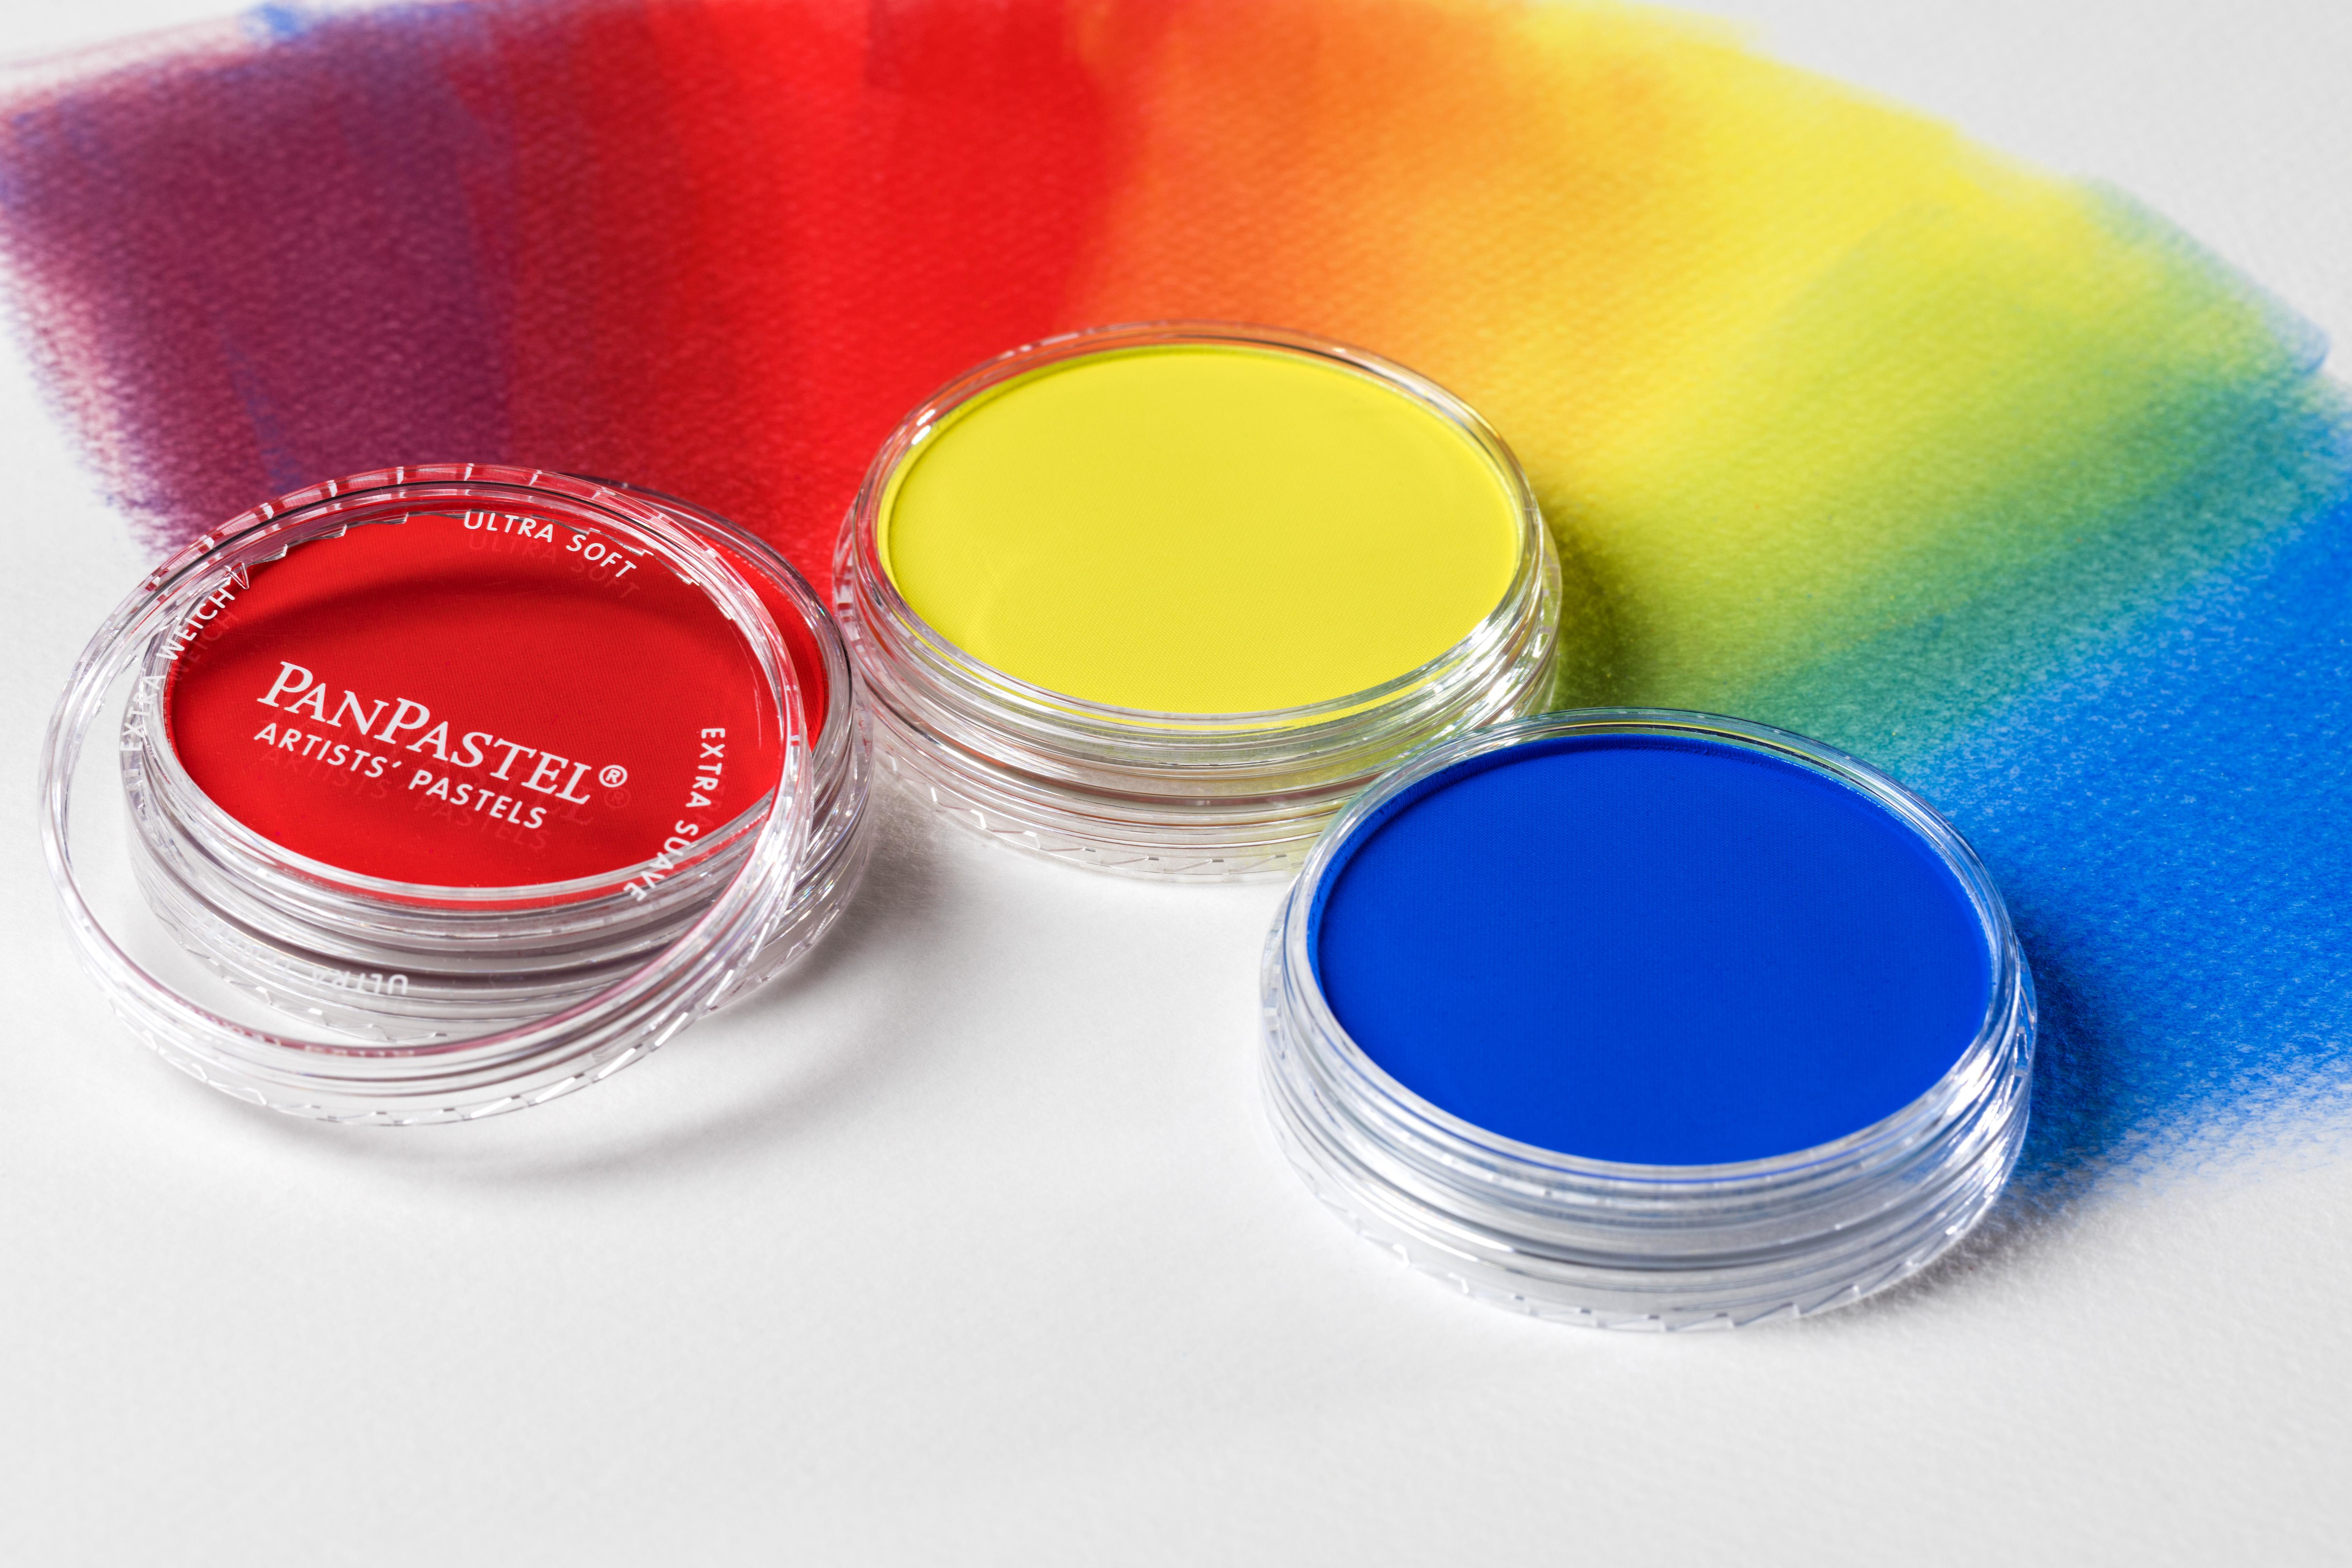 Images of blended Pan Pastels in Red, yellow and blue. Pan Pastels - how to pastel without all that annoying dust.